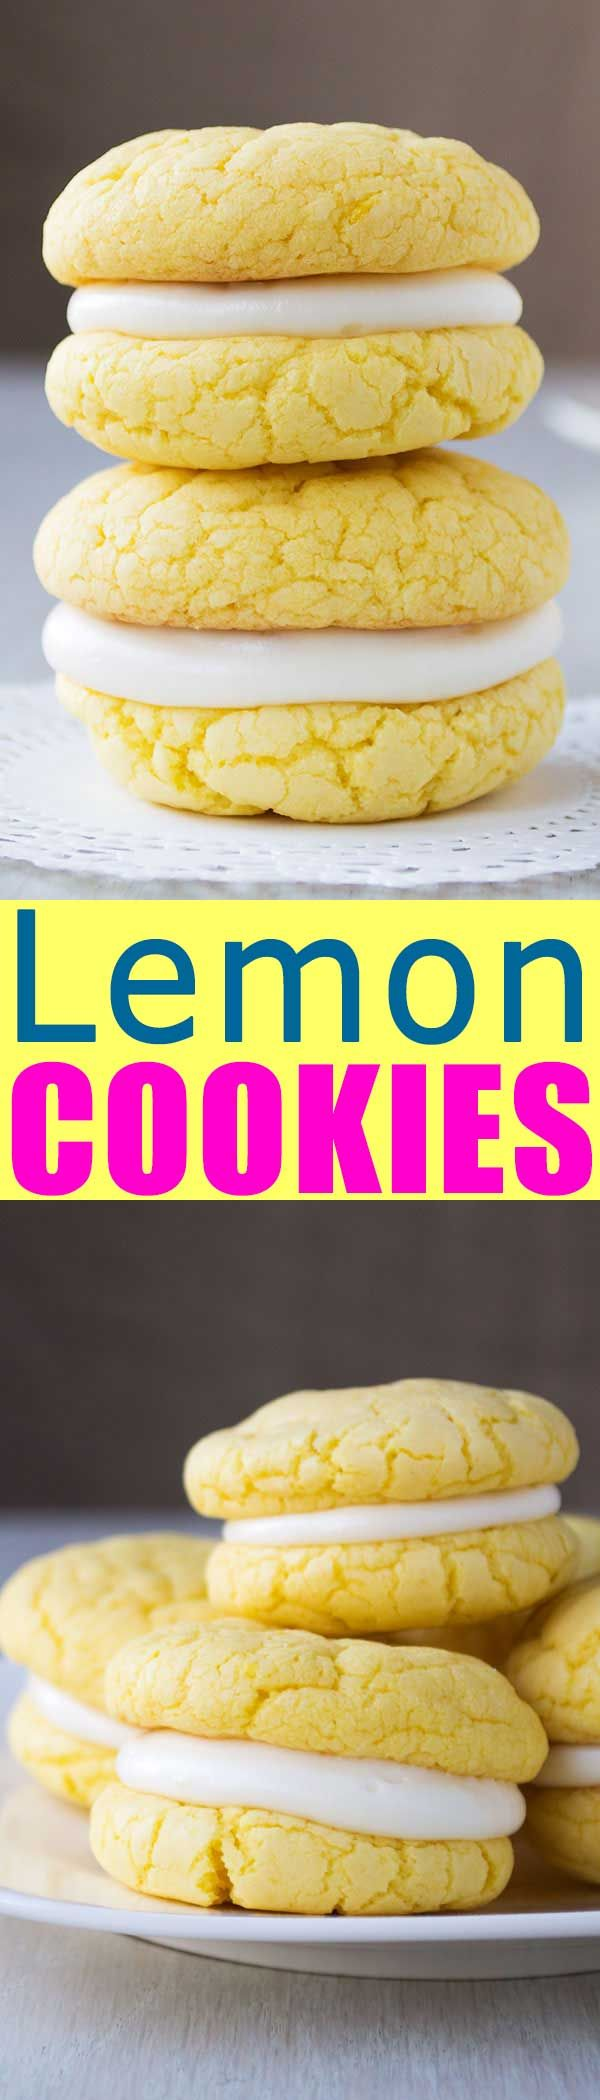 Easy Lemon Sandwich Cookies from cake mix with cream cheese frosting So soft and chewy